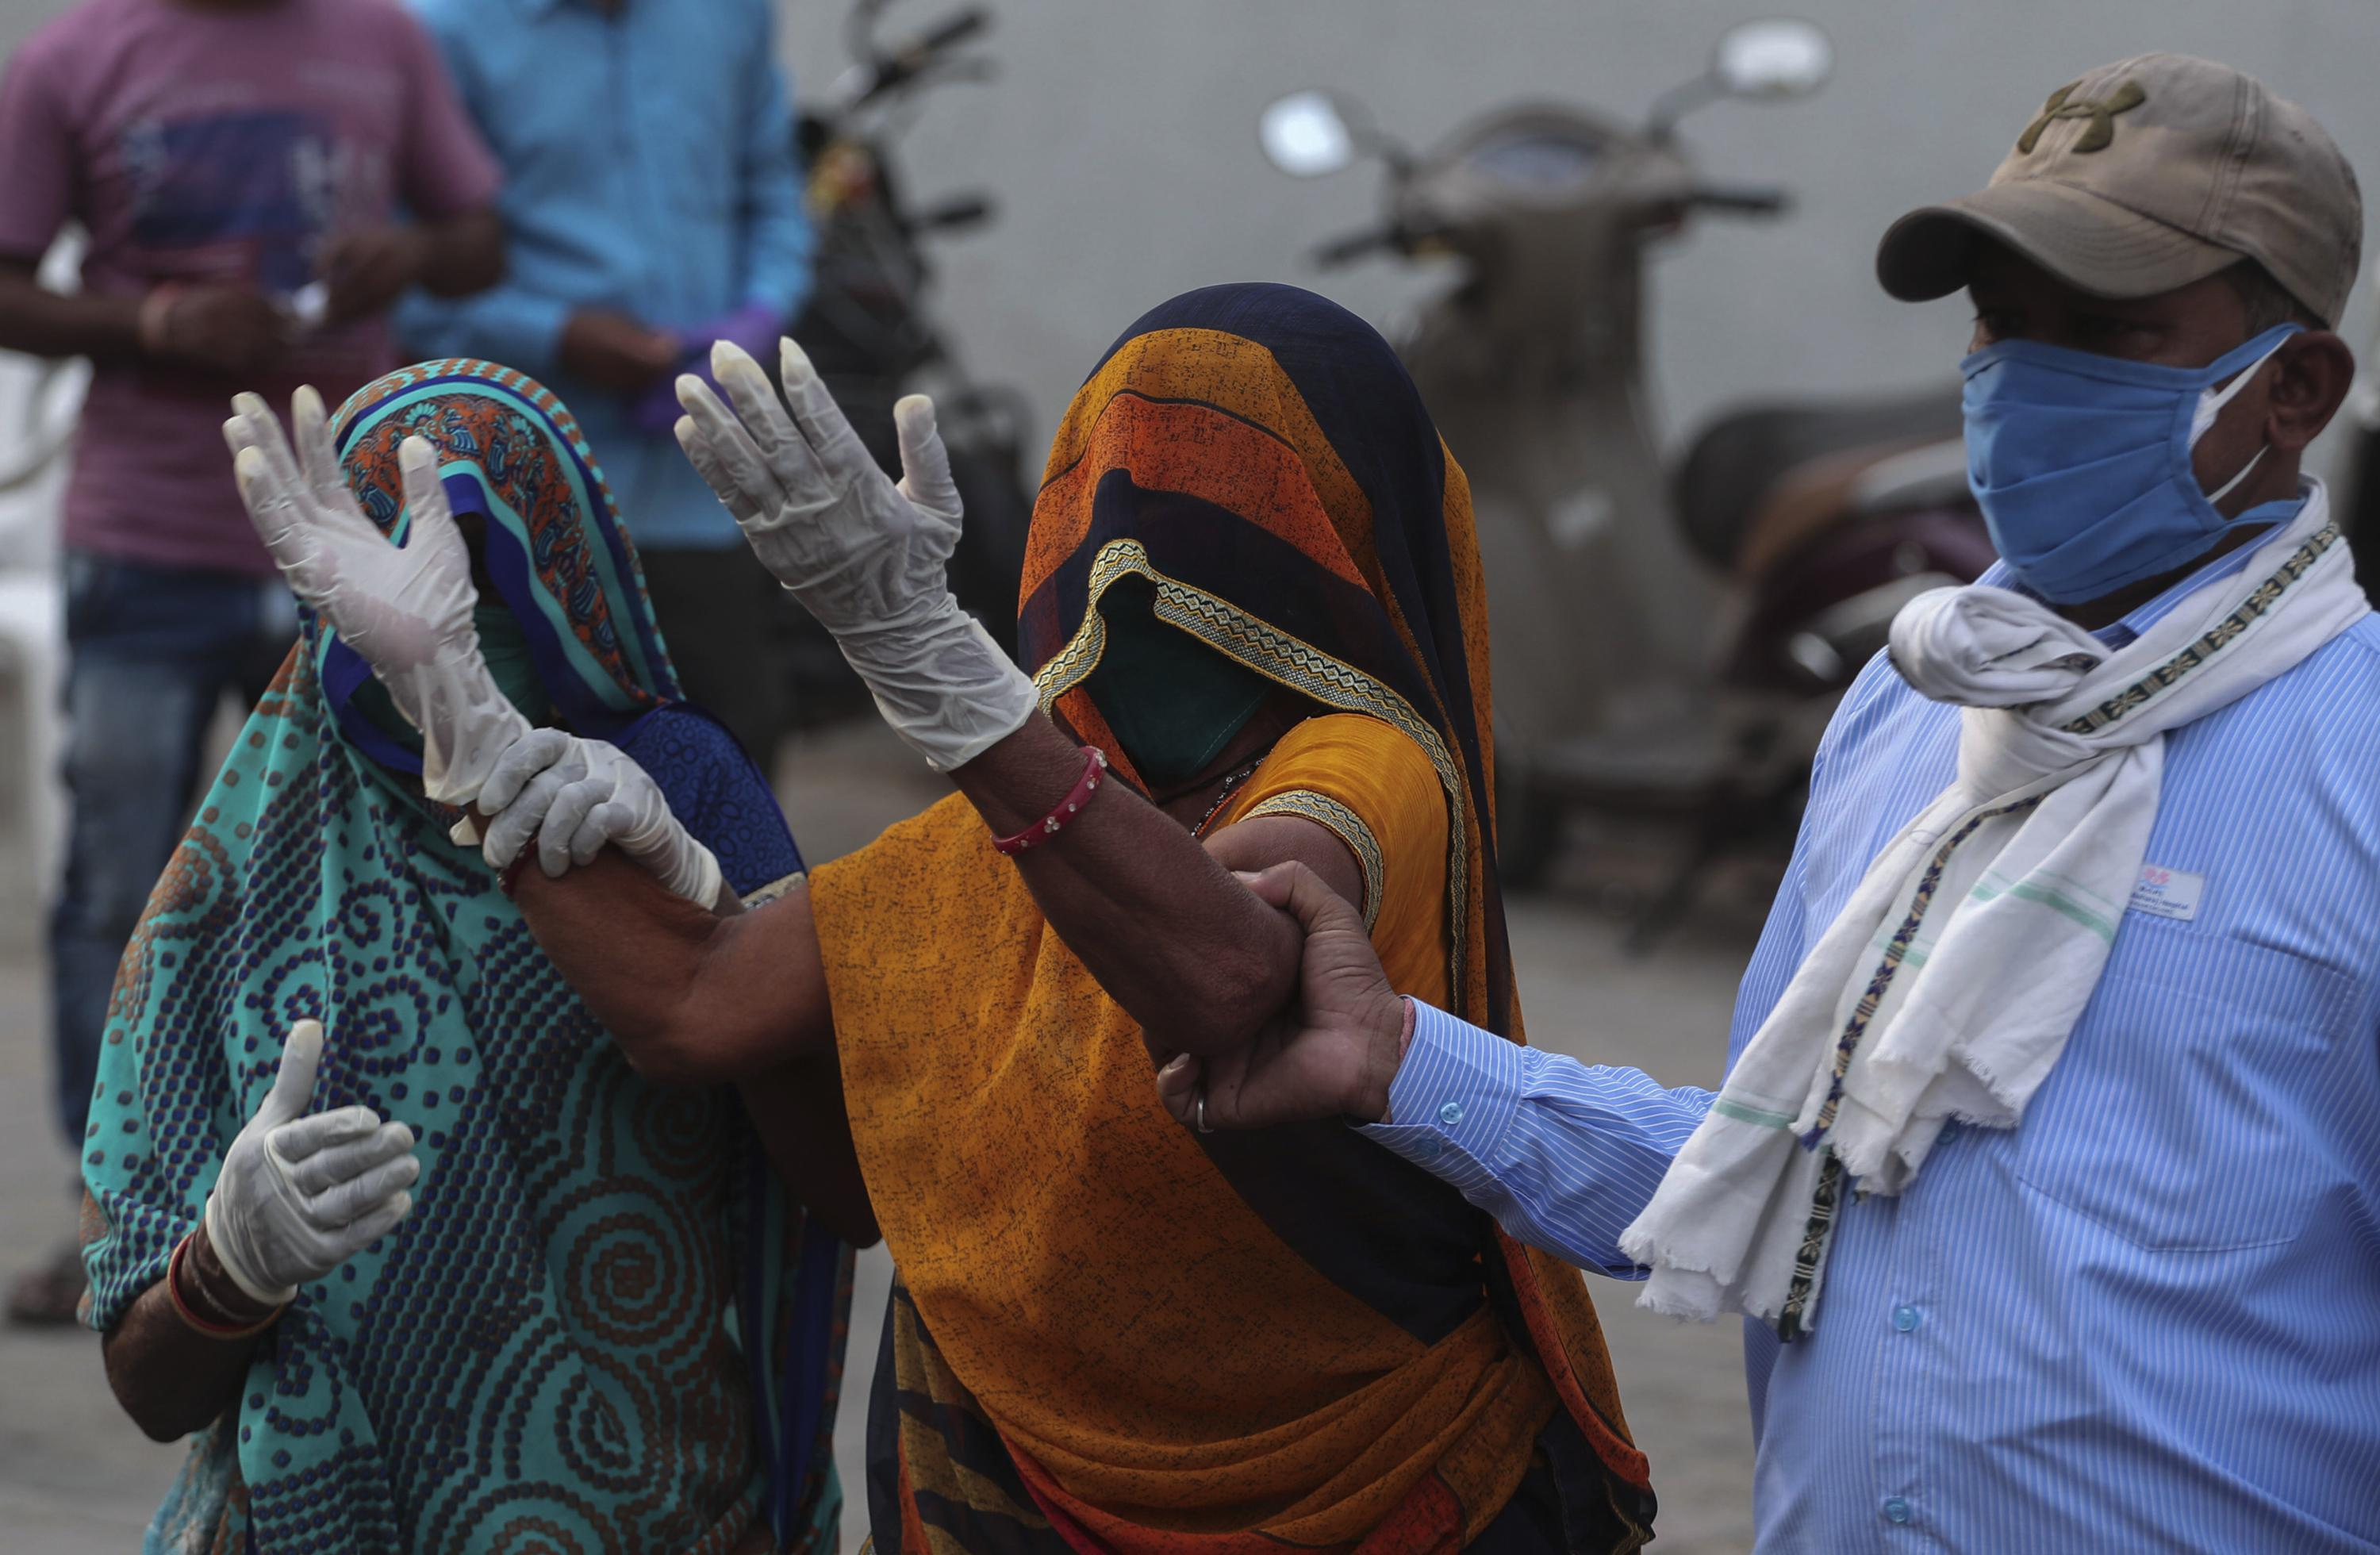 The Latest: S Korea to send medical items to help India